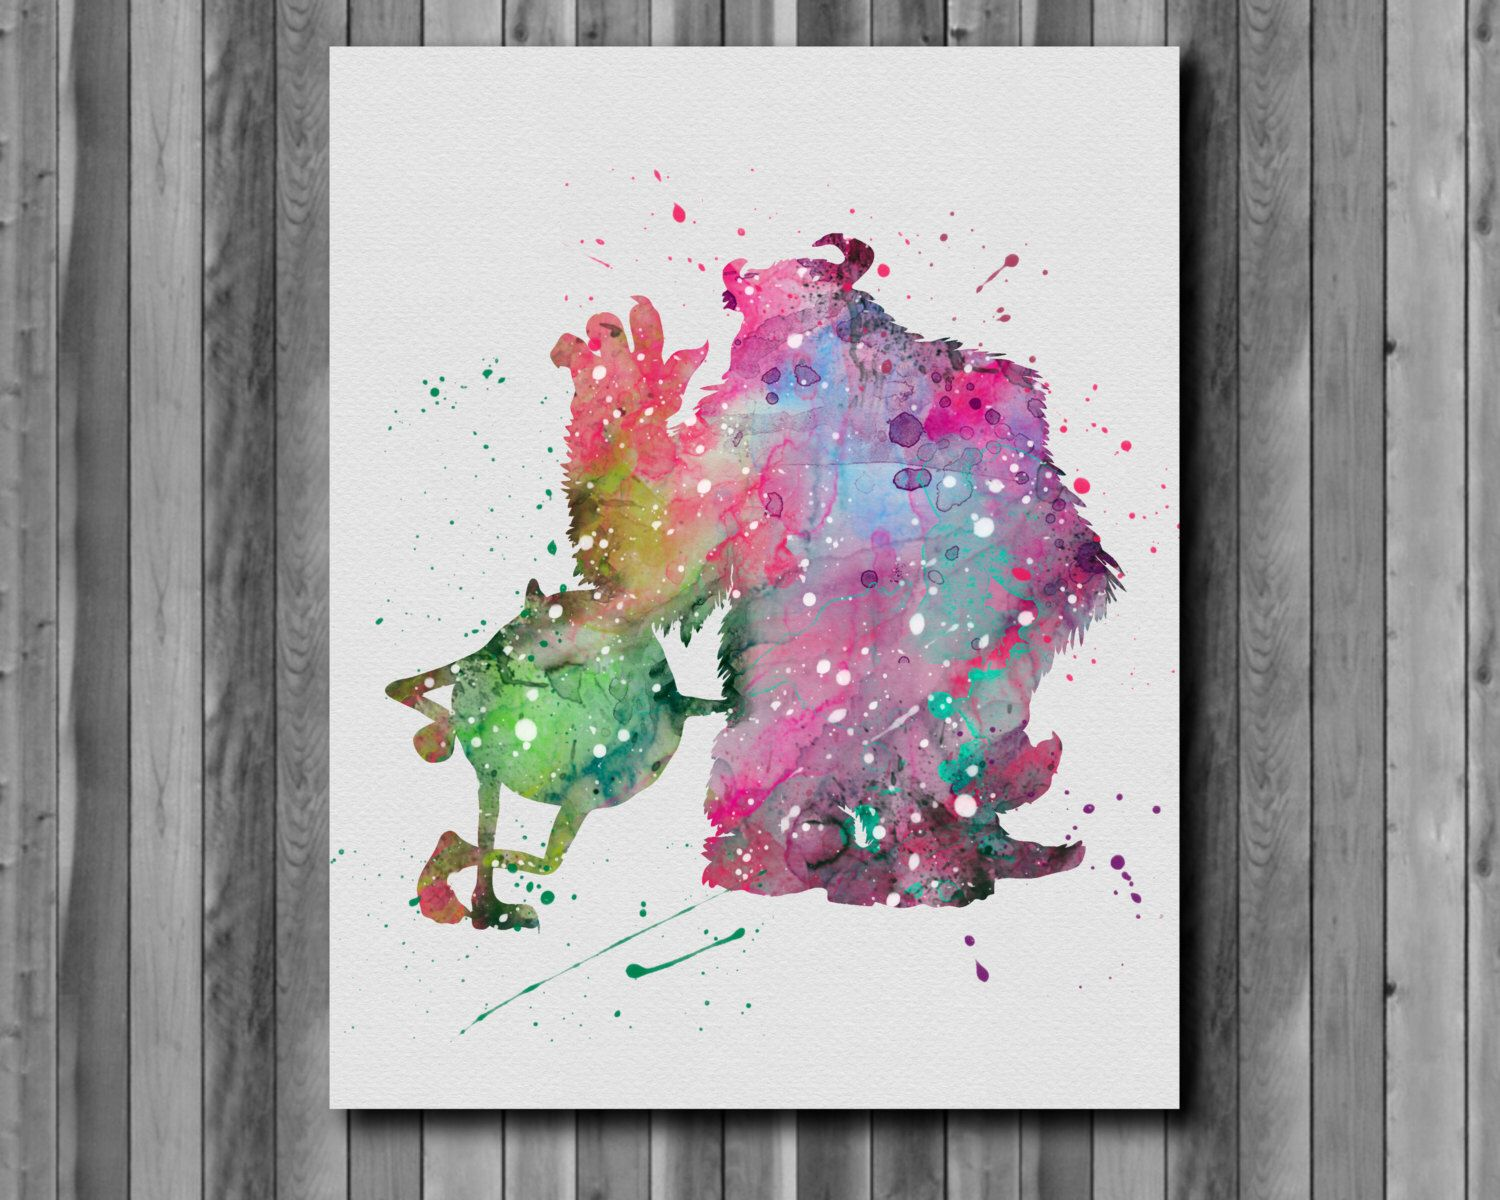 Mike & Sulley Poster, Monsters Disney  - Art Print, instant download, Watercolor Print, poster by digitalaquamarine on Etsy https://www.etsy.com/listing/233687951/mike-sulley-poster-monsters-disney-art